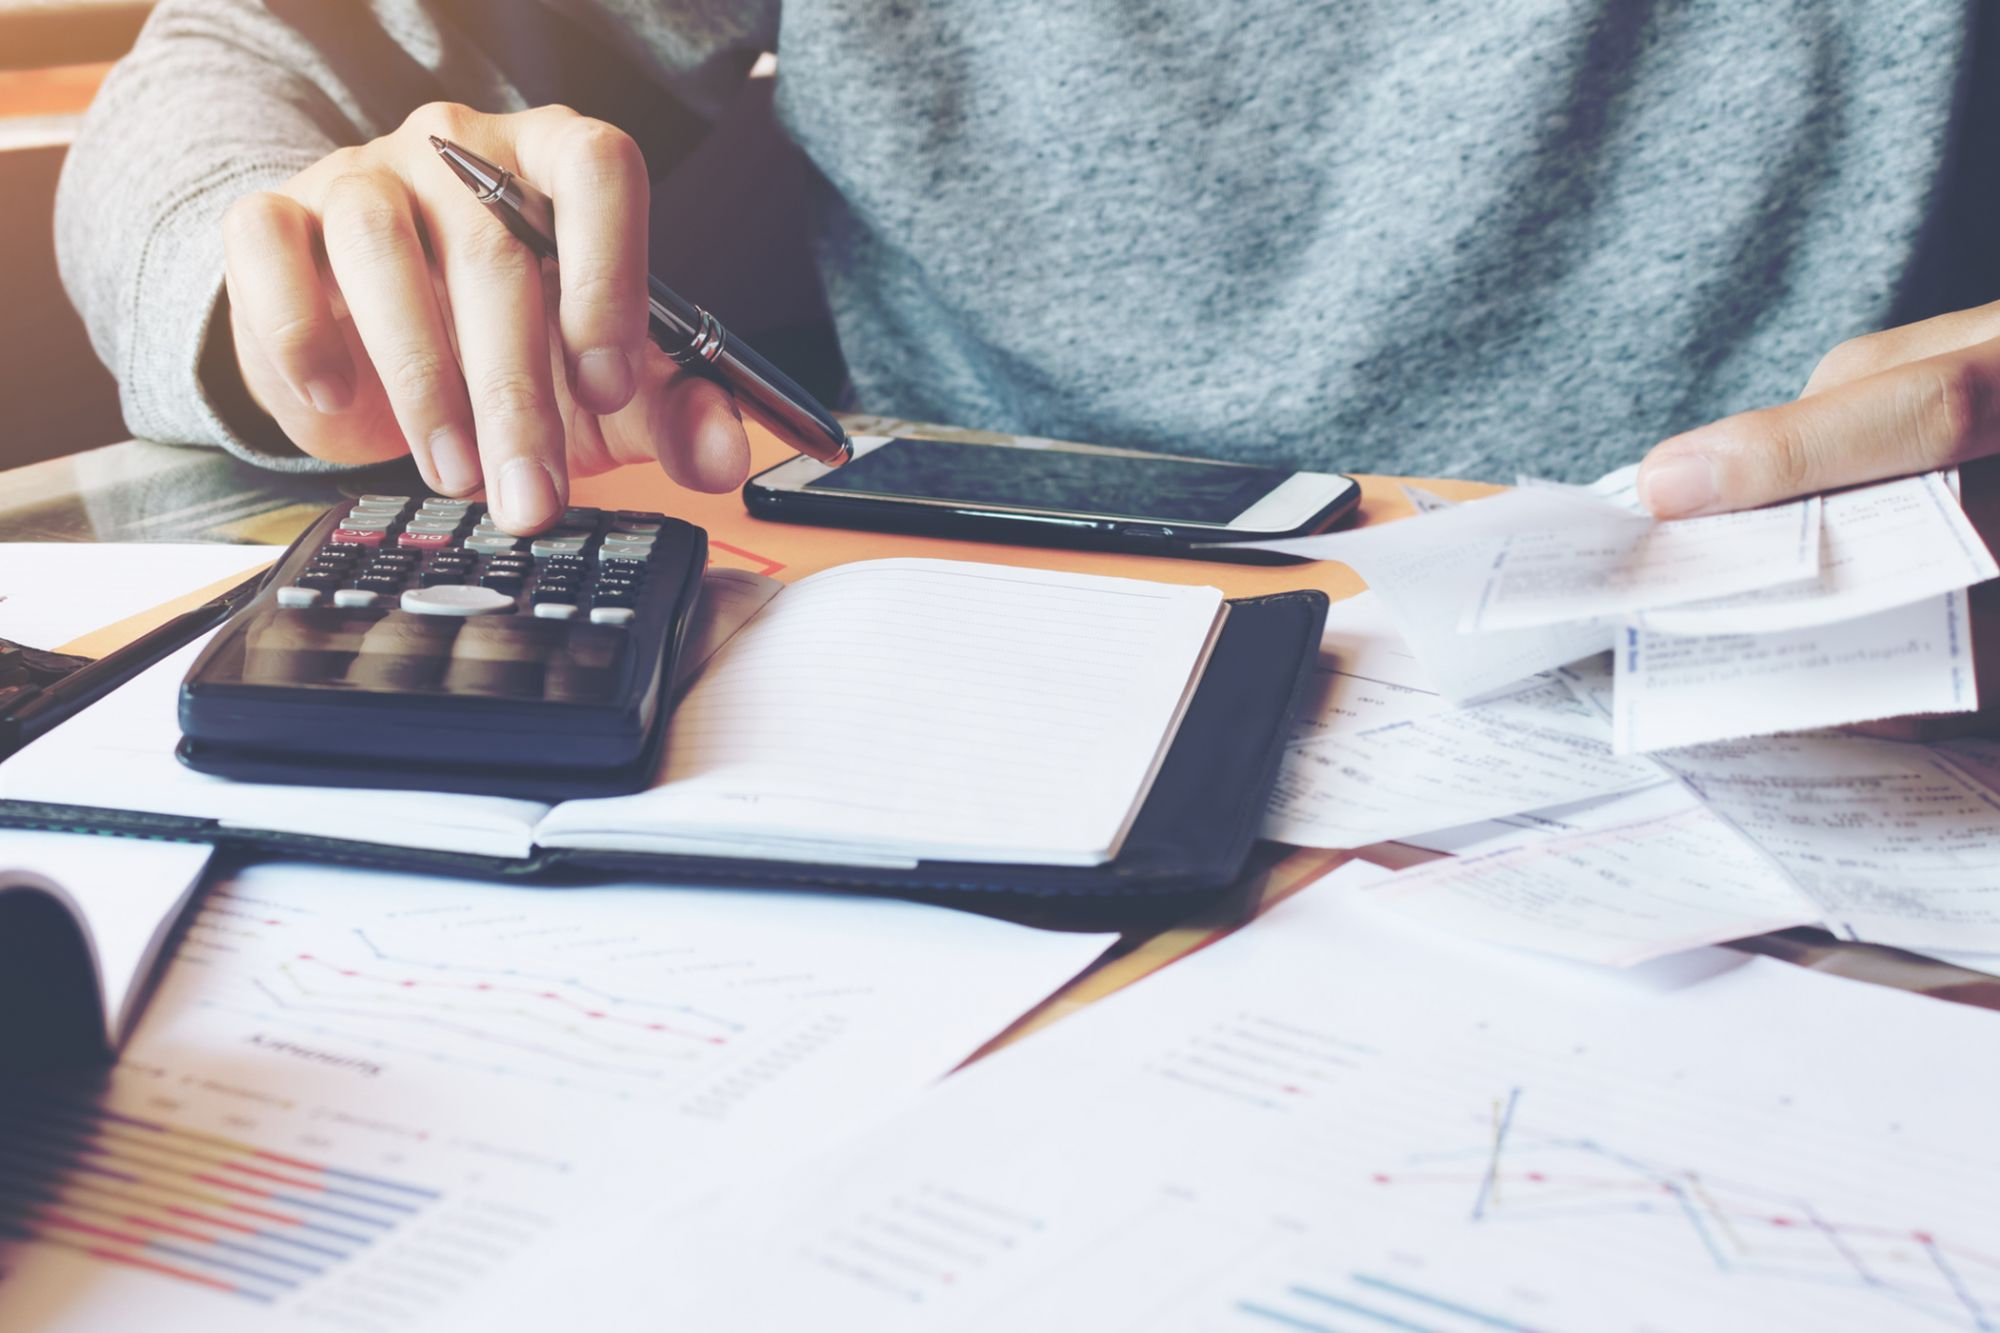 Business Use Of Home Deduction 2020.The Most Forgotten Tax Deductions Business Owners Should Take